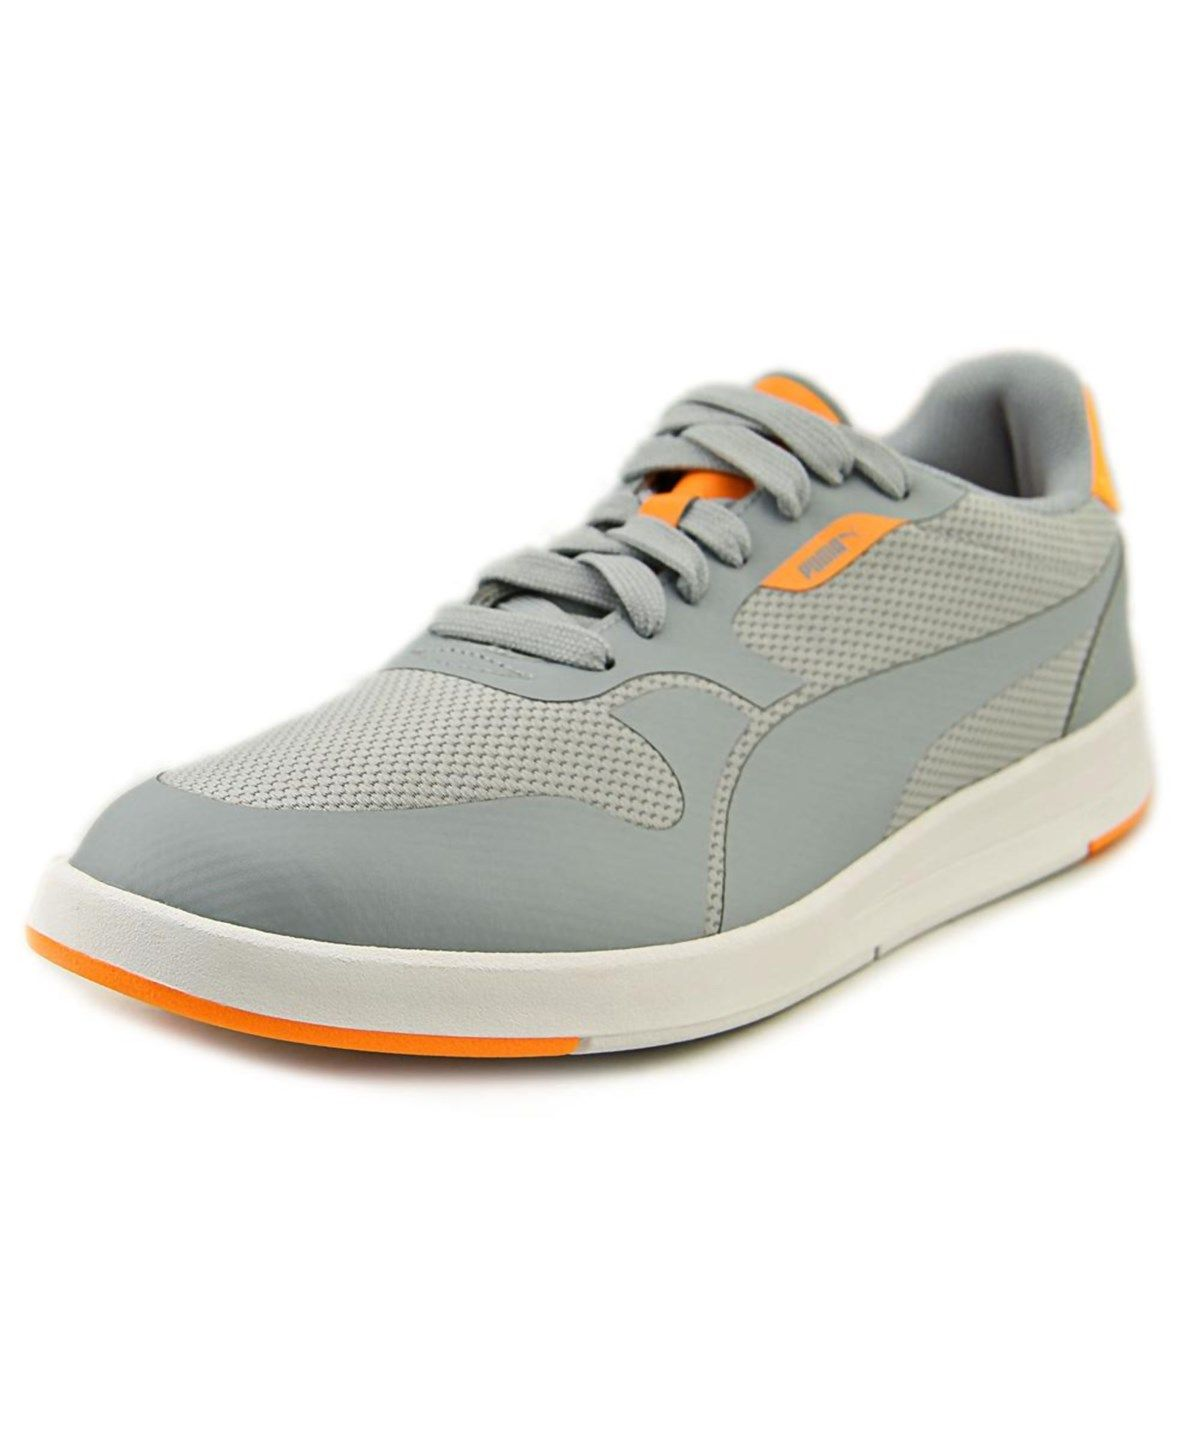 89fbb23460a PUMA PUMA ICRA EVO ROUND TOE SYNTHETIC SNEAKERS .  puma  shoes  sneakers